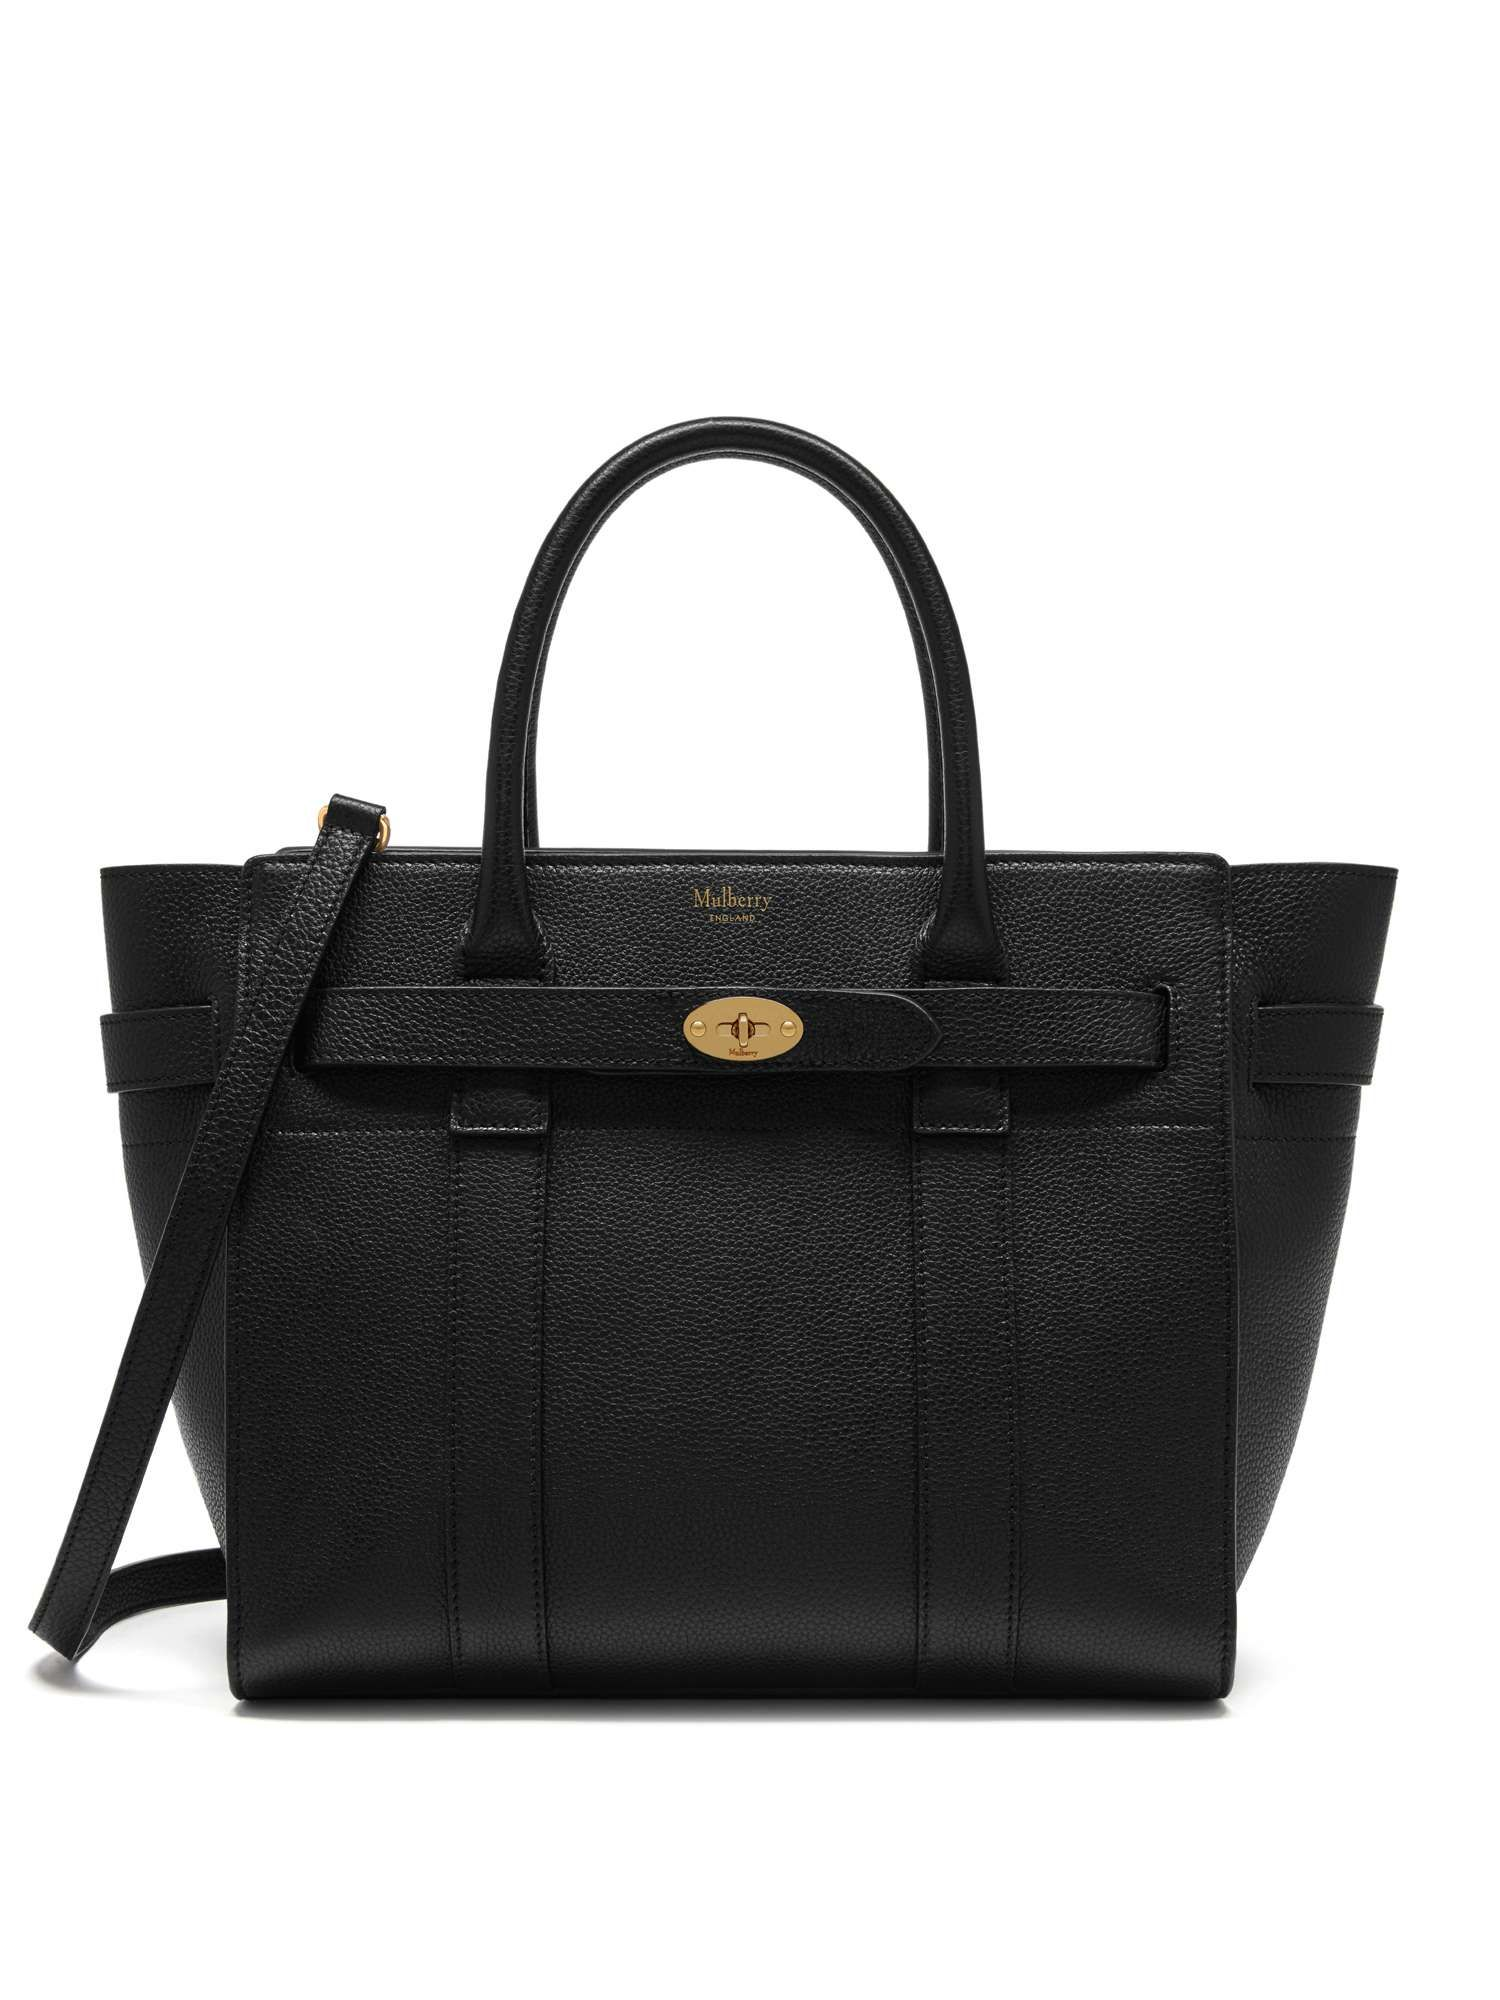 Mulberry Small Zipped Bayswater Bag - House of Fraser  df9d971961d00